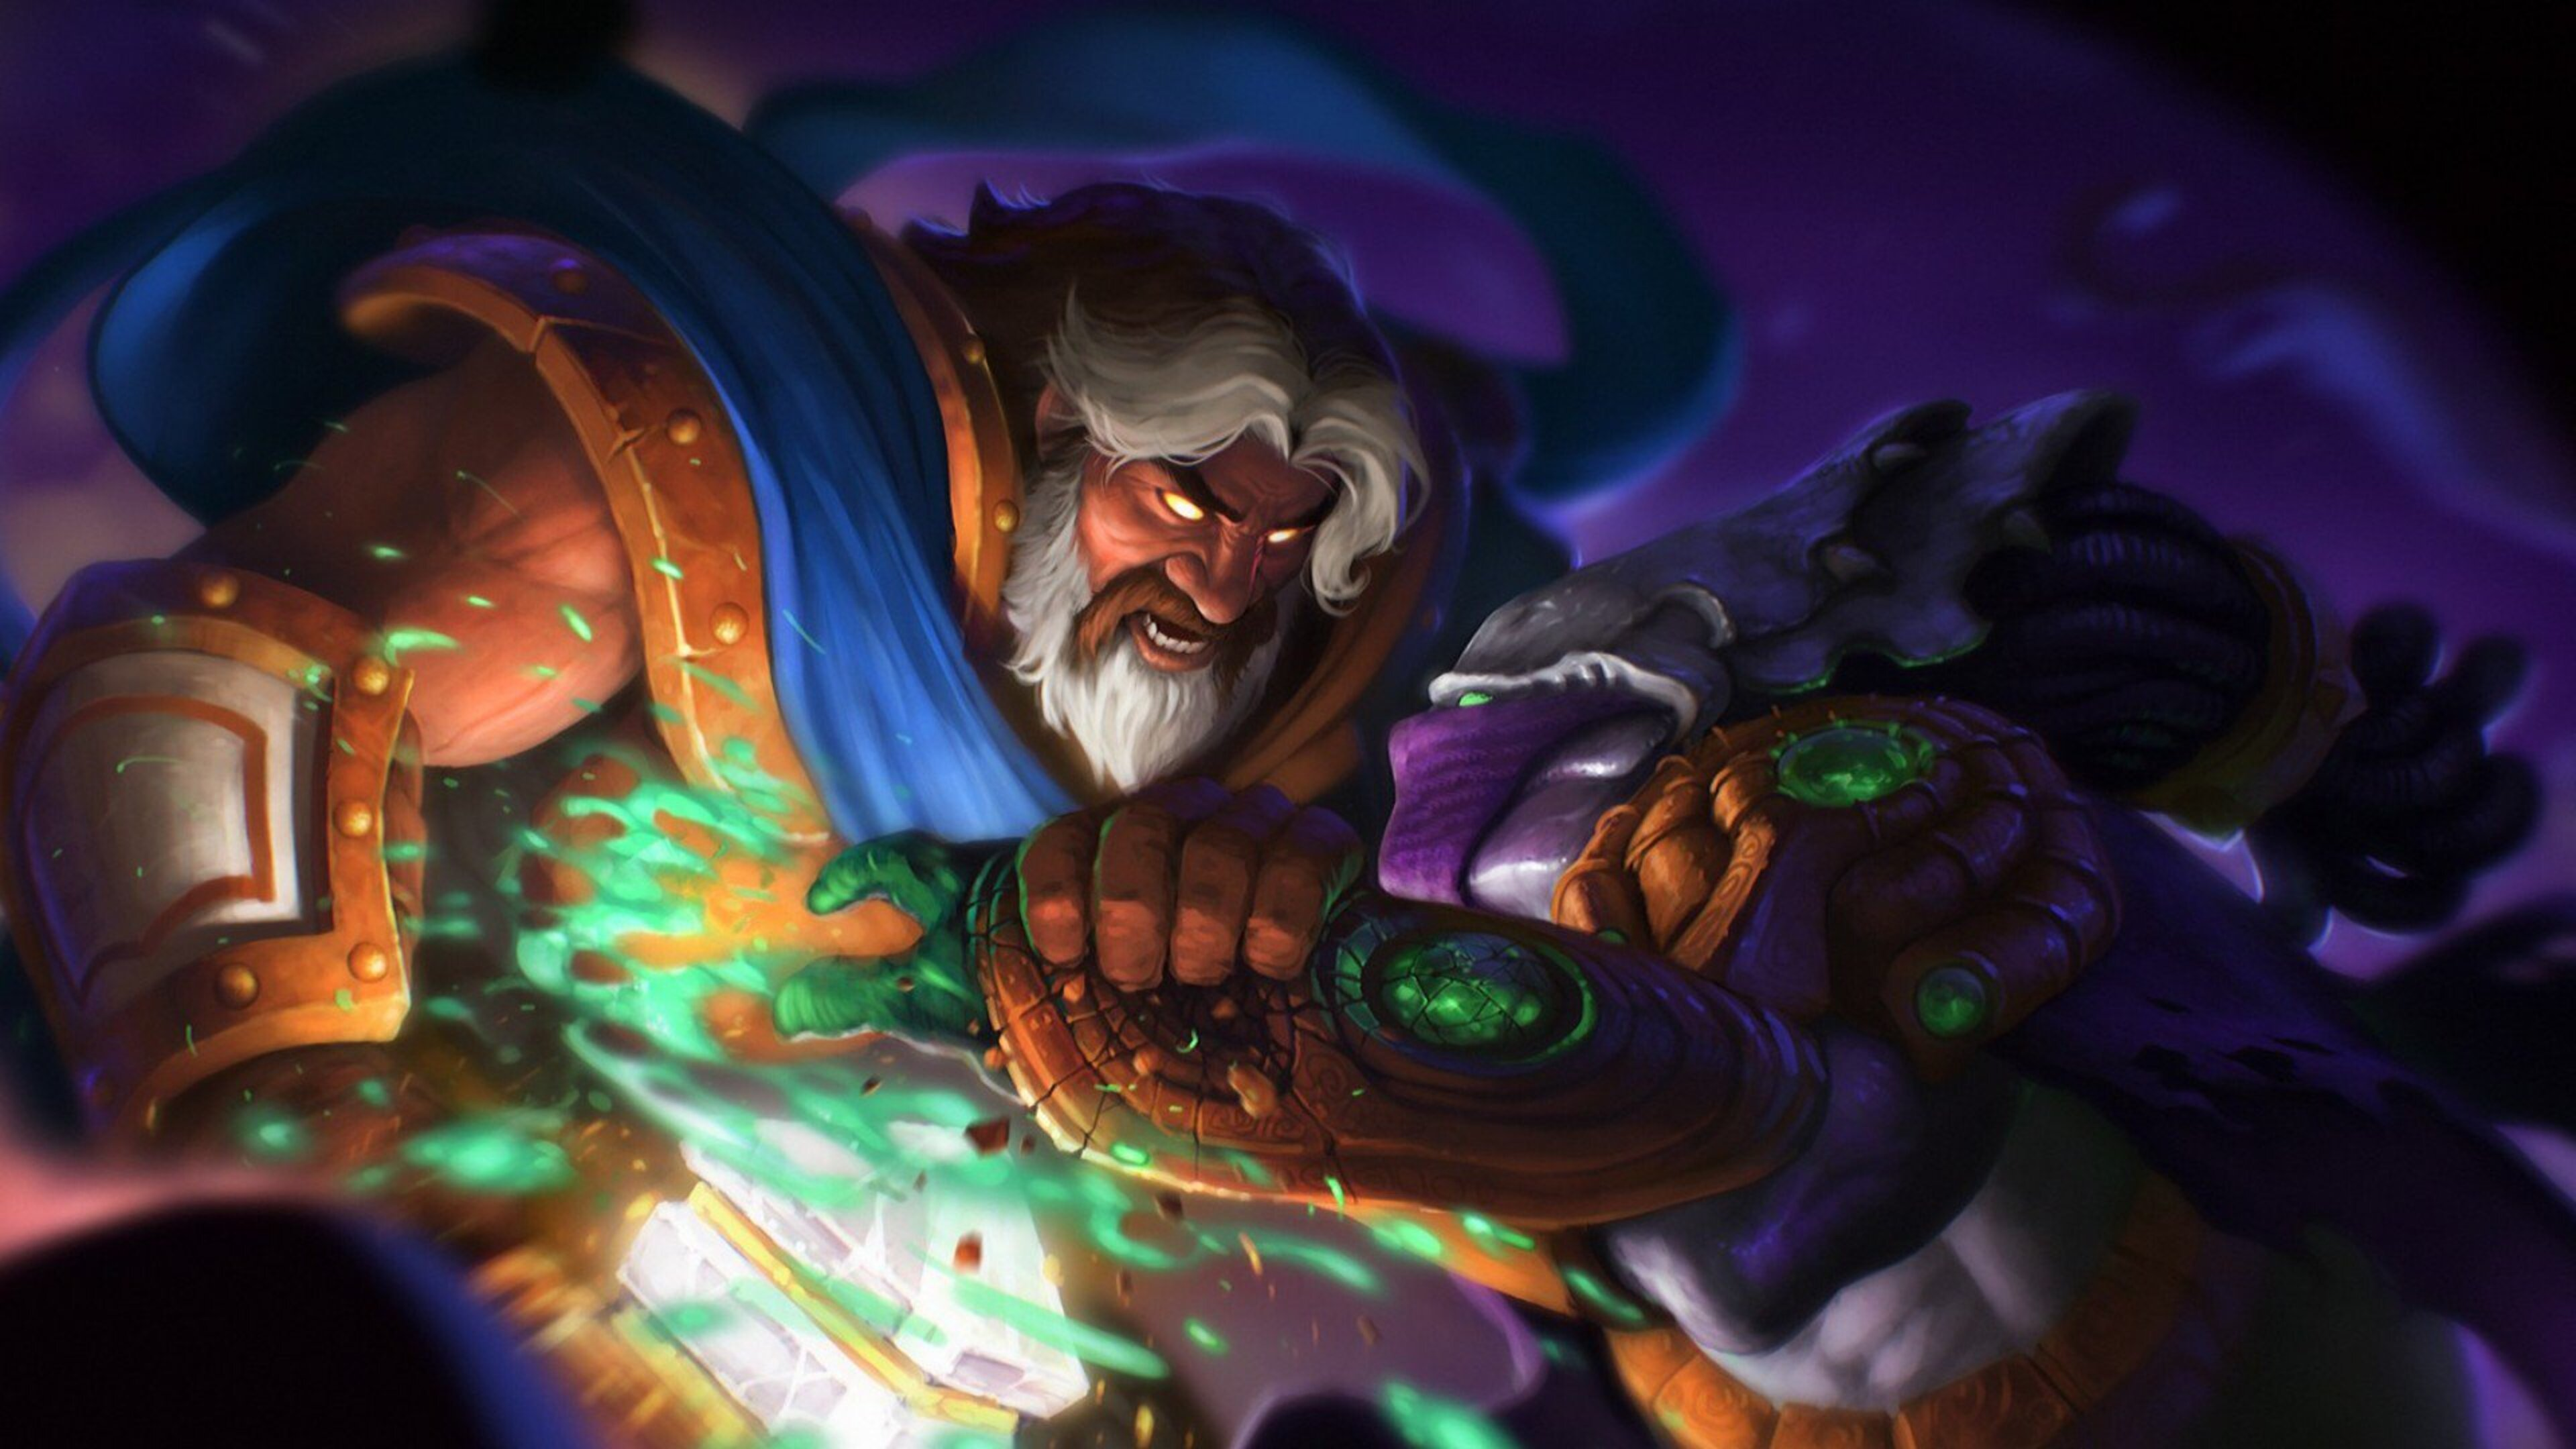 heroes-world-of-warcraft-pic.jpg